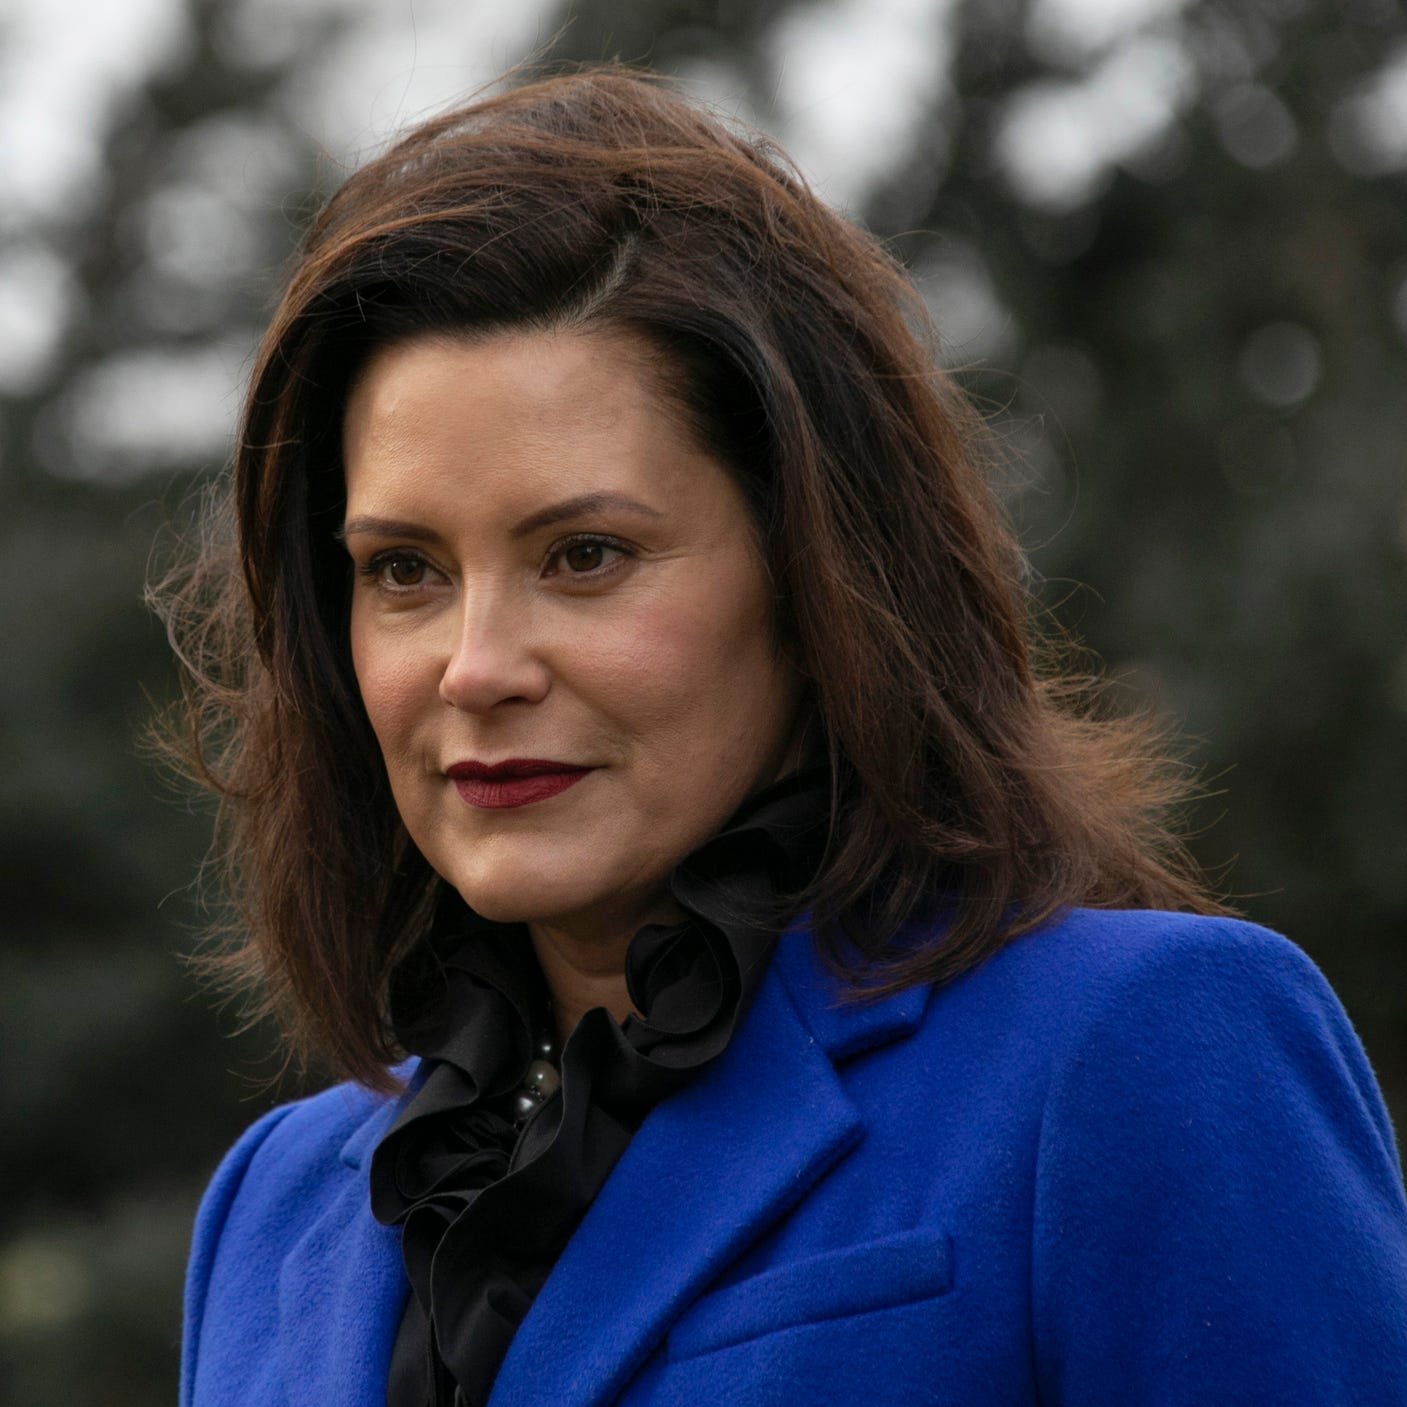 Michigan Governor Gretchen Whitmer, stands in front of the Michigan State Capitol building in Lansing in December, 2018.